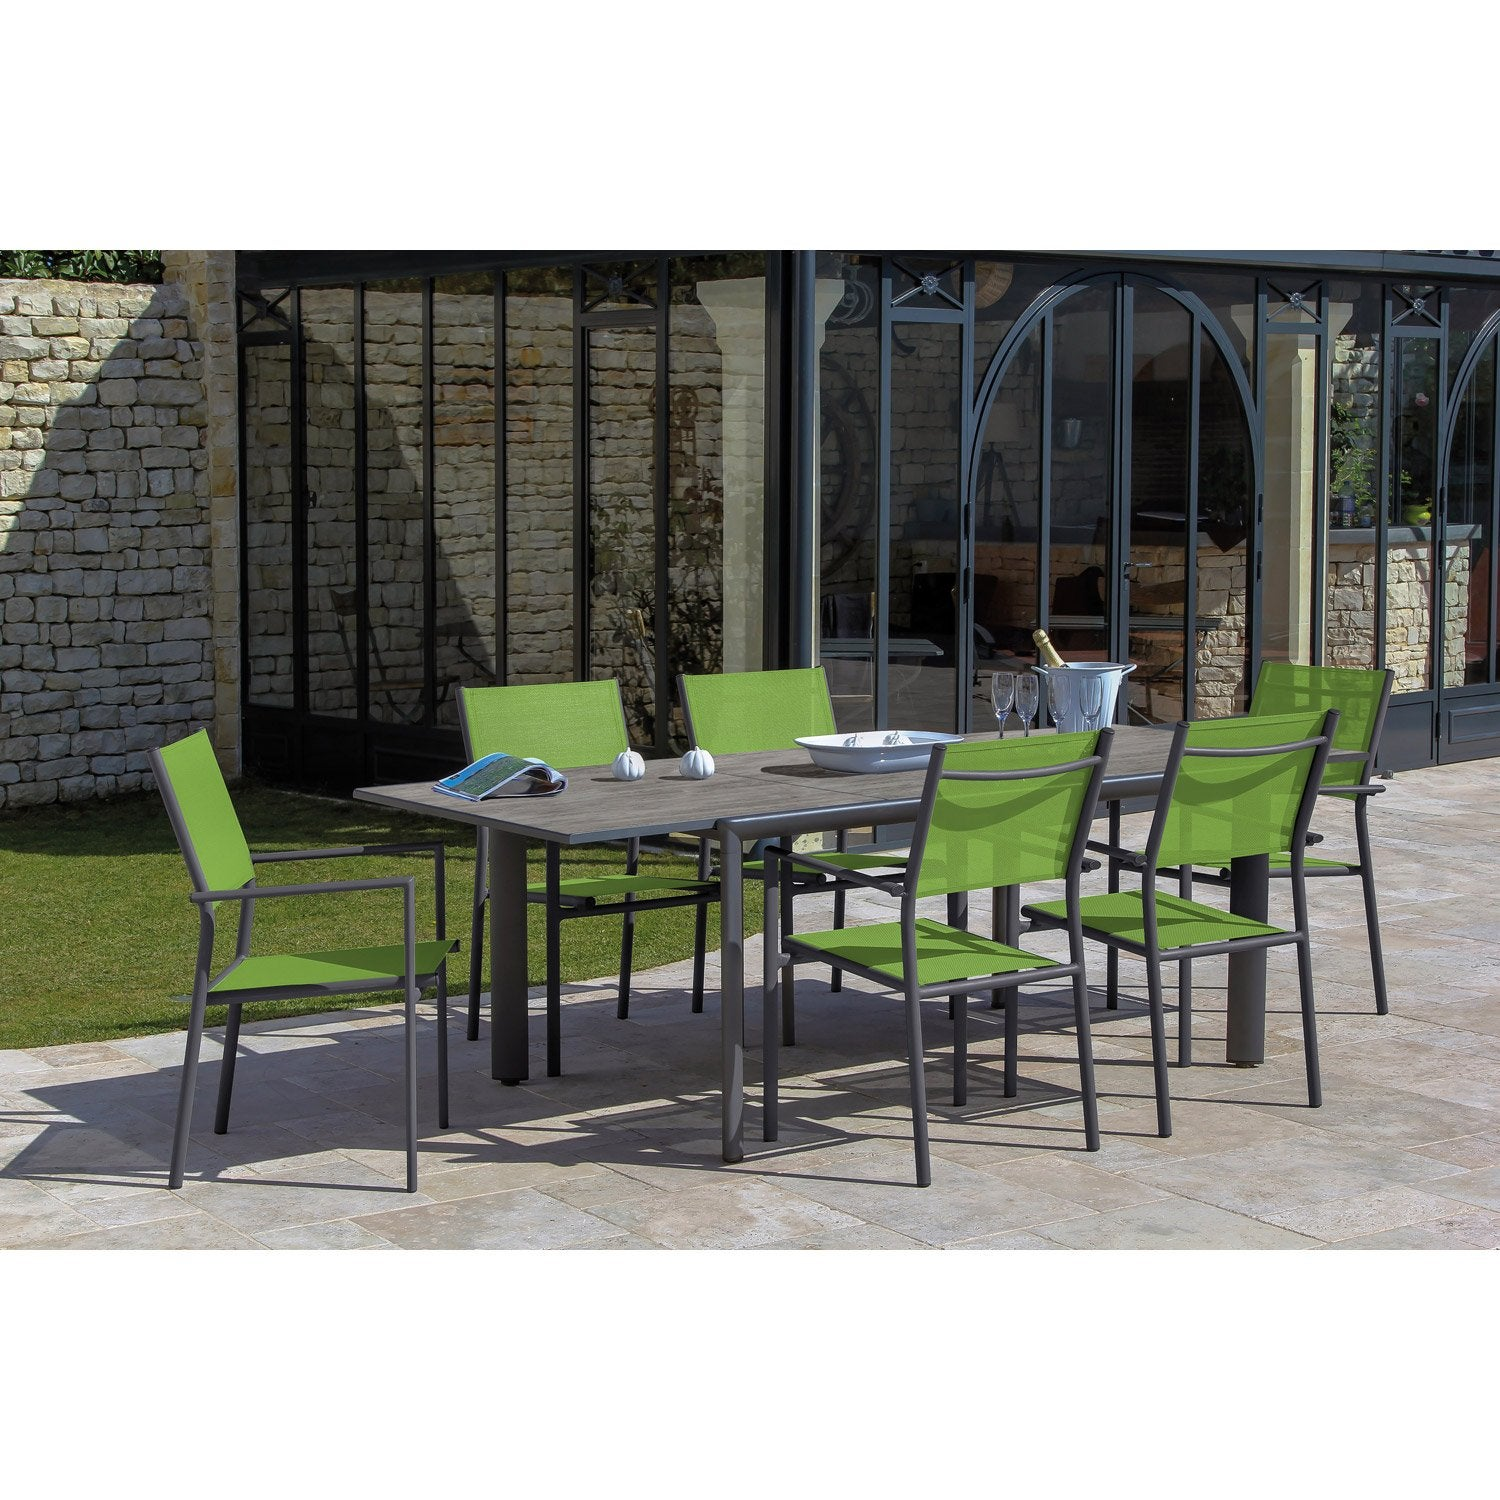 table de jardin messa rectangulaire gris 6 personnes leroy merlin. Black Bedroom Furniture Sets. Home Design Ideas